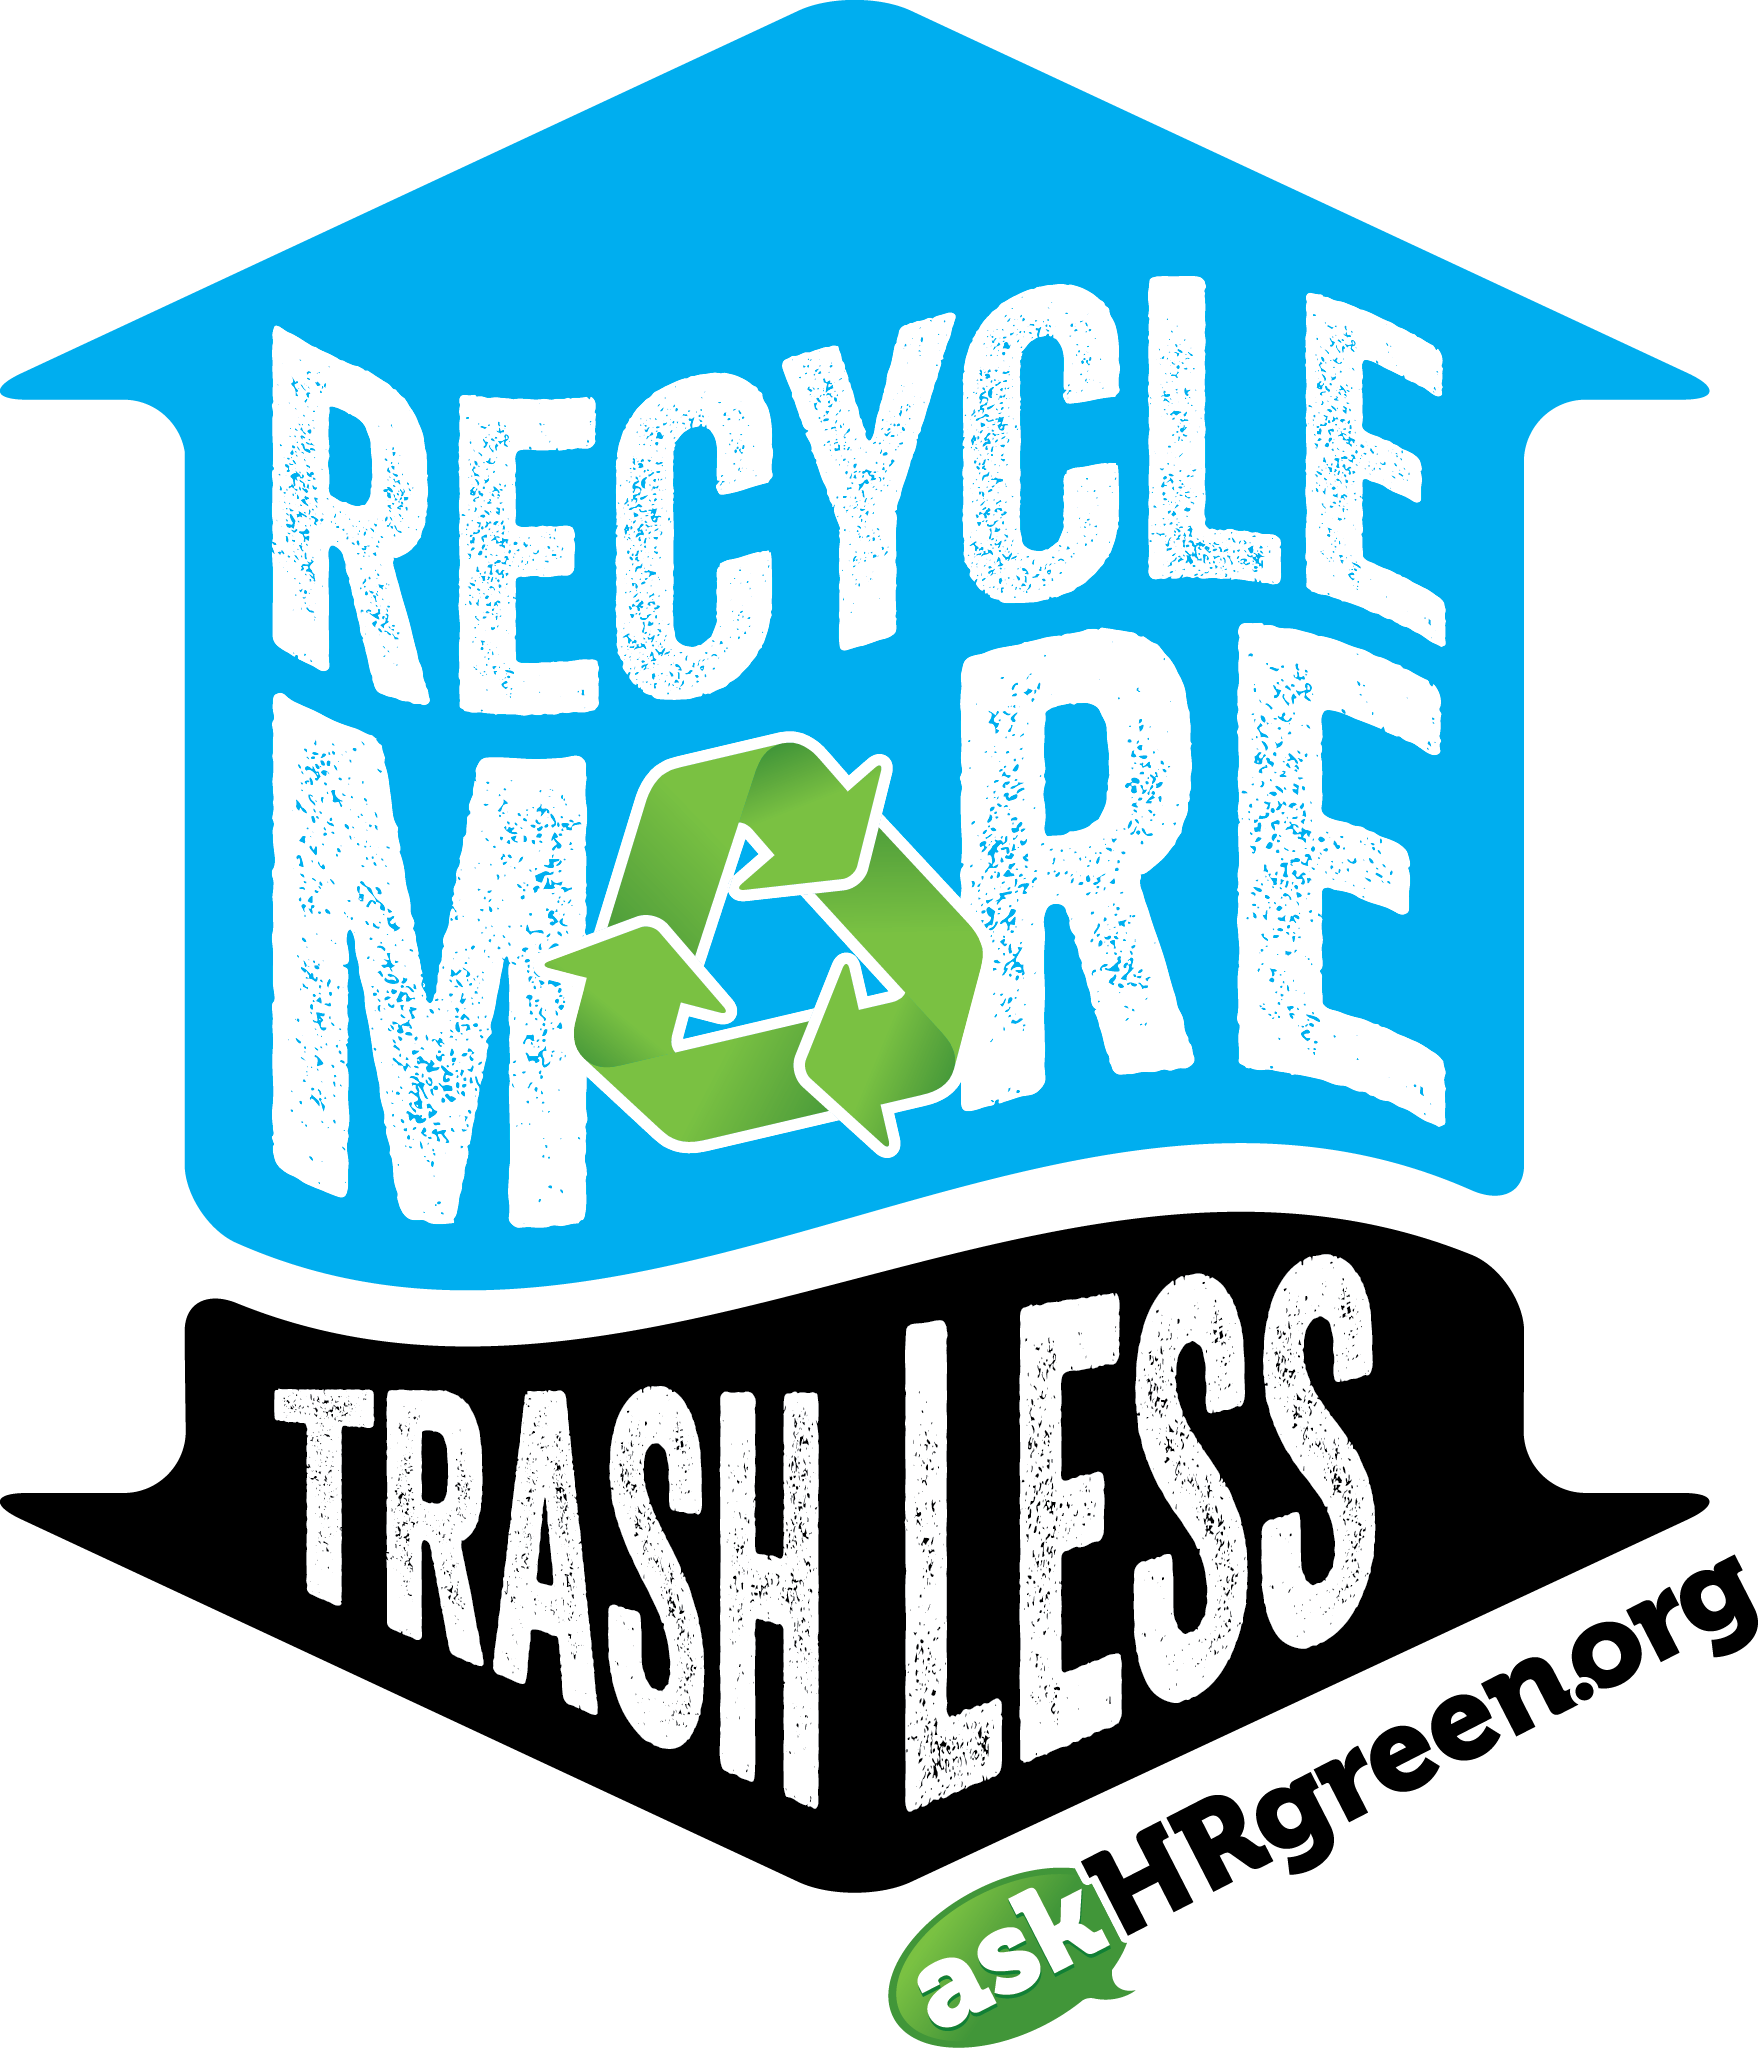 Recycle More Trash Less Logo